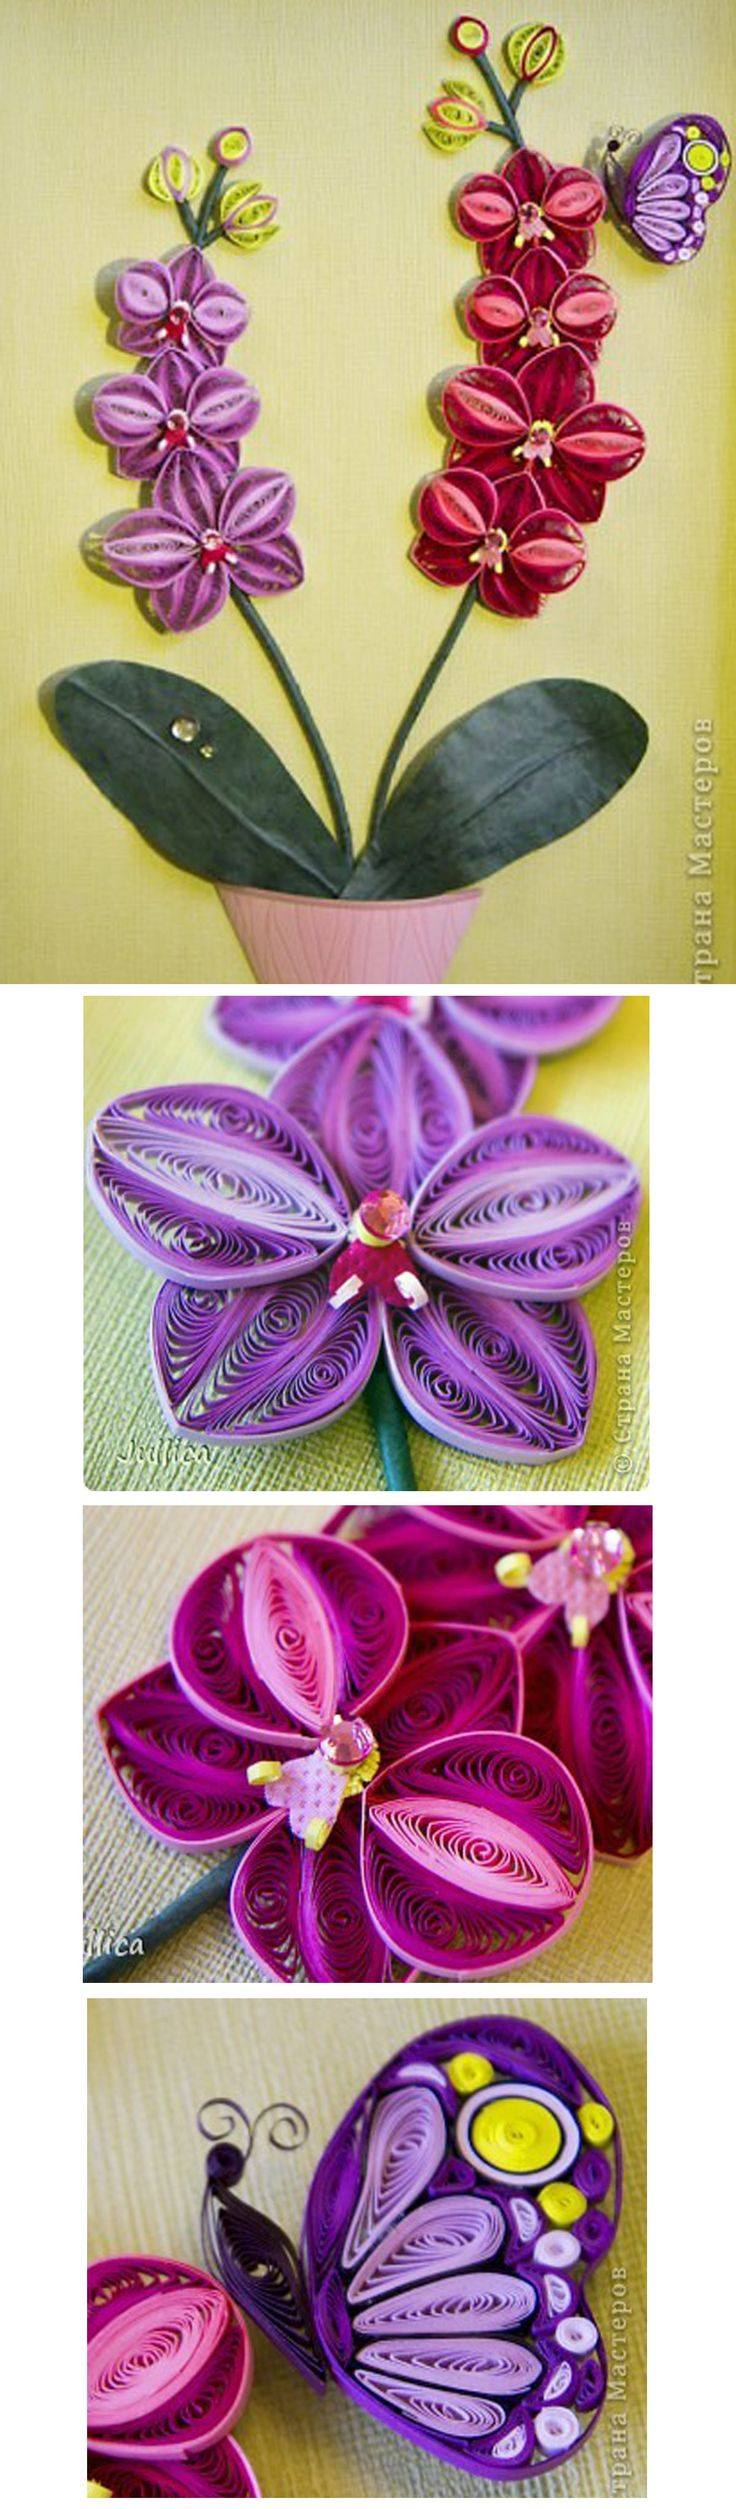 Quilled Orchids by Jullica